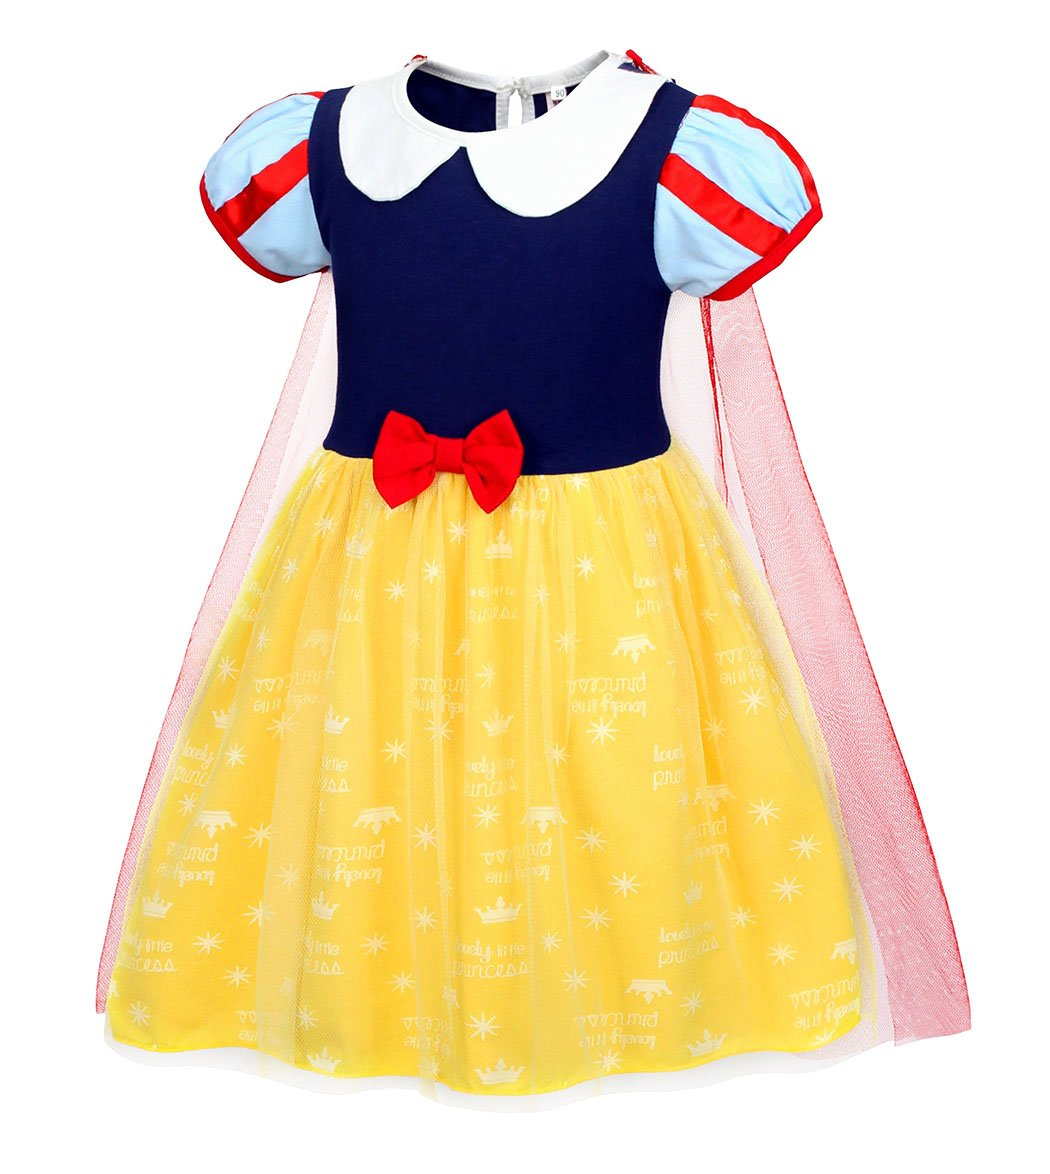 Jurebecia Princess Snow White Dress Toddler Girls Nightgowns Birthday Halloween Party Costumes with Cape Size 3T by Jurebecia (Image #3)